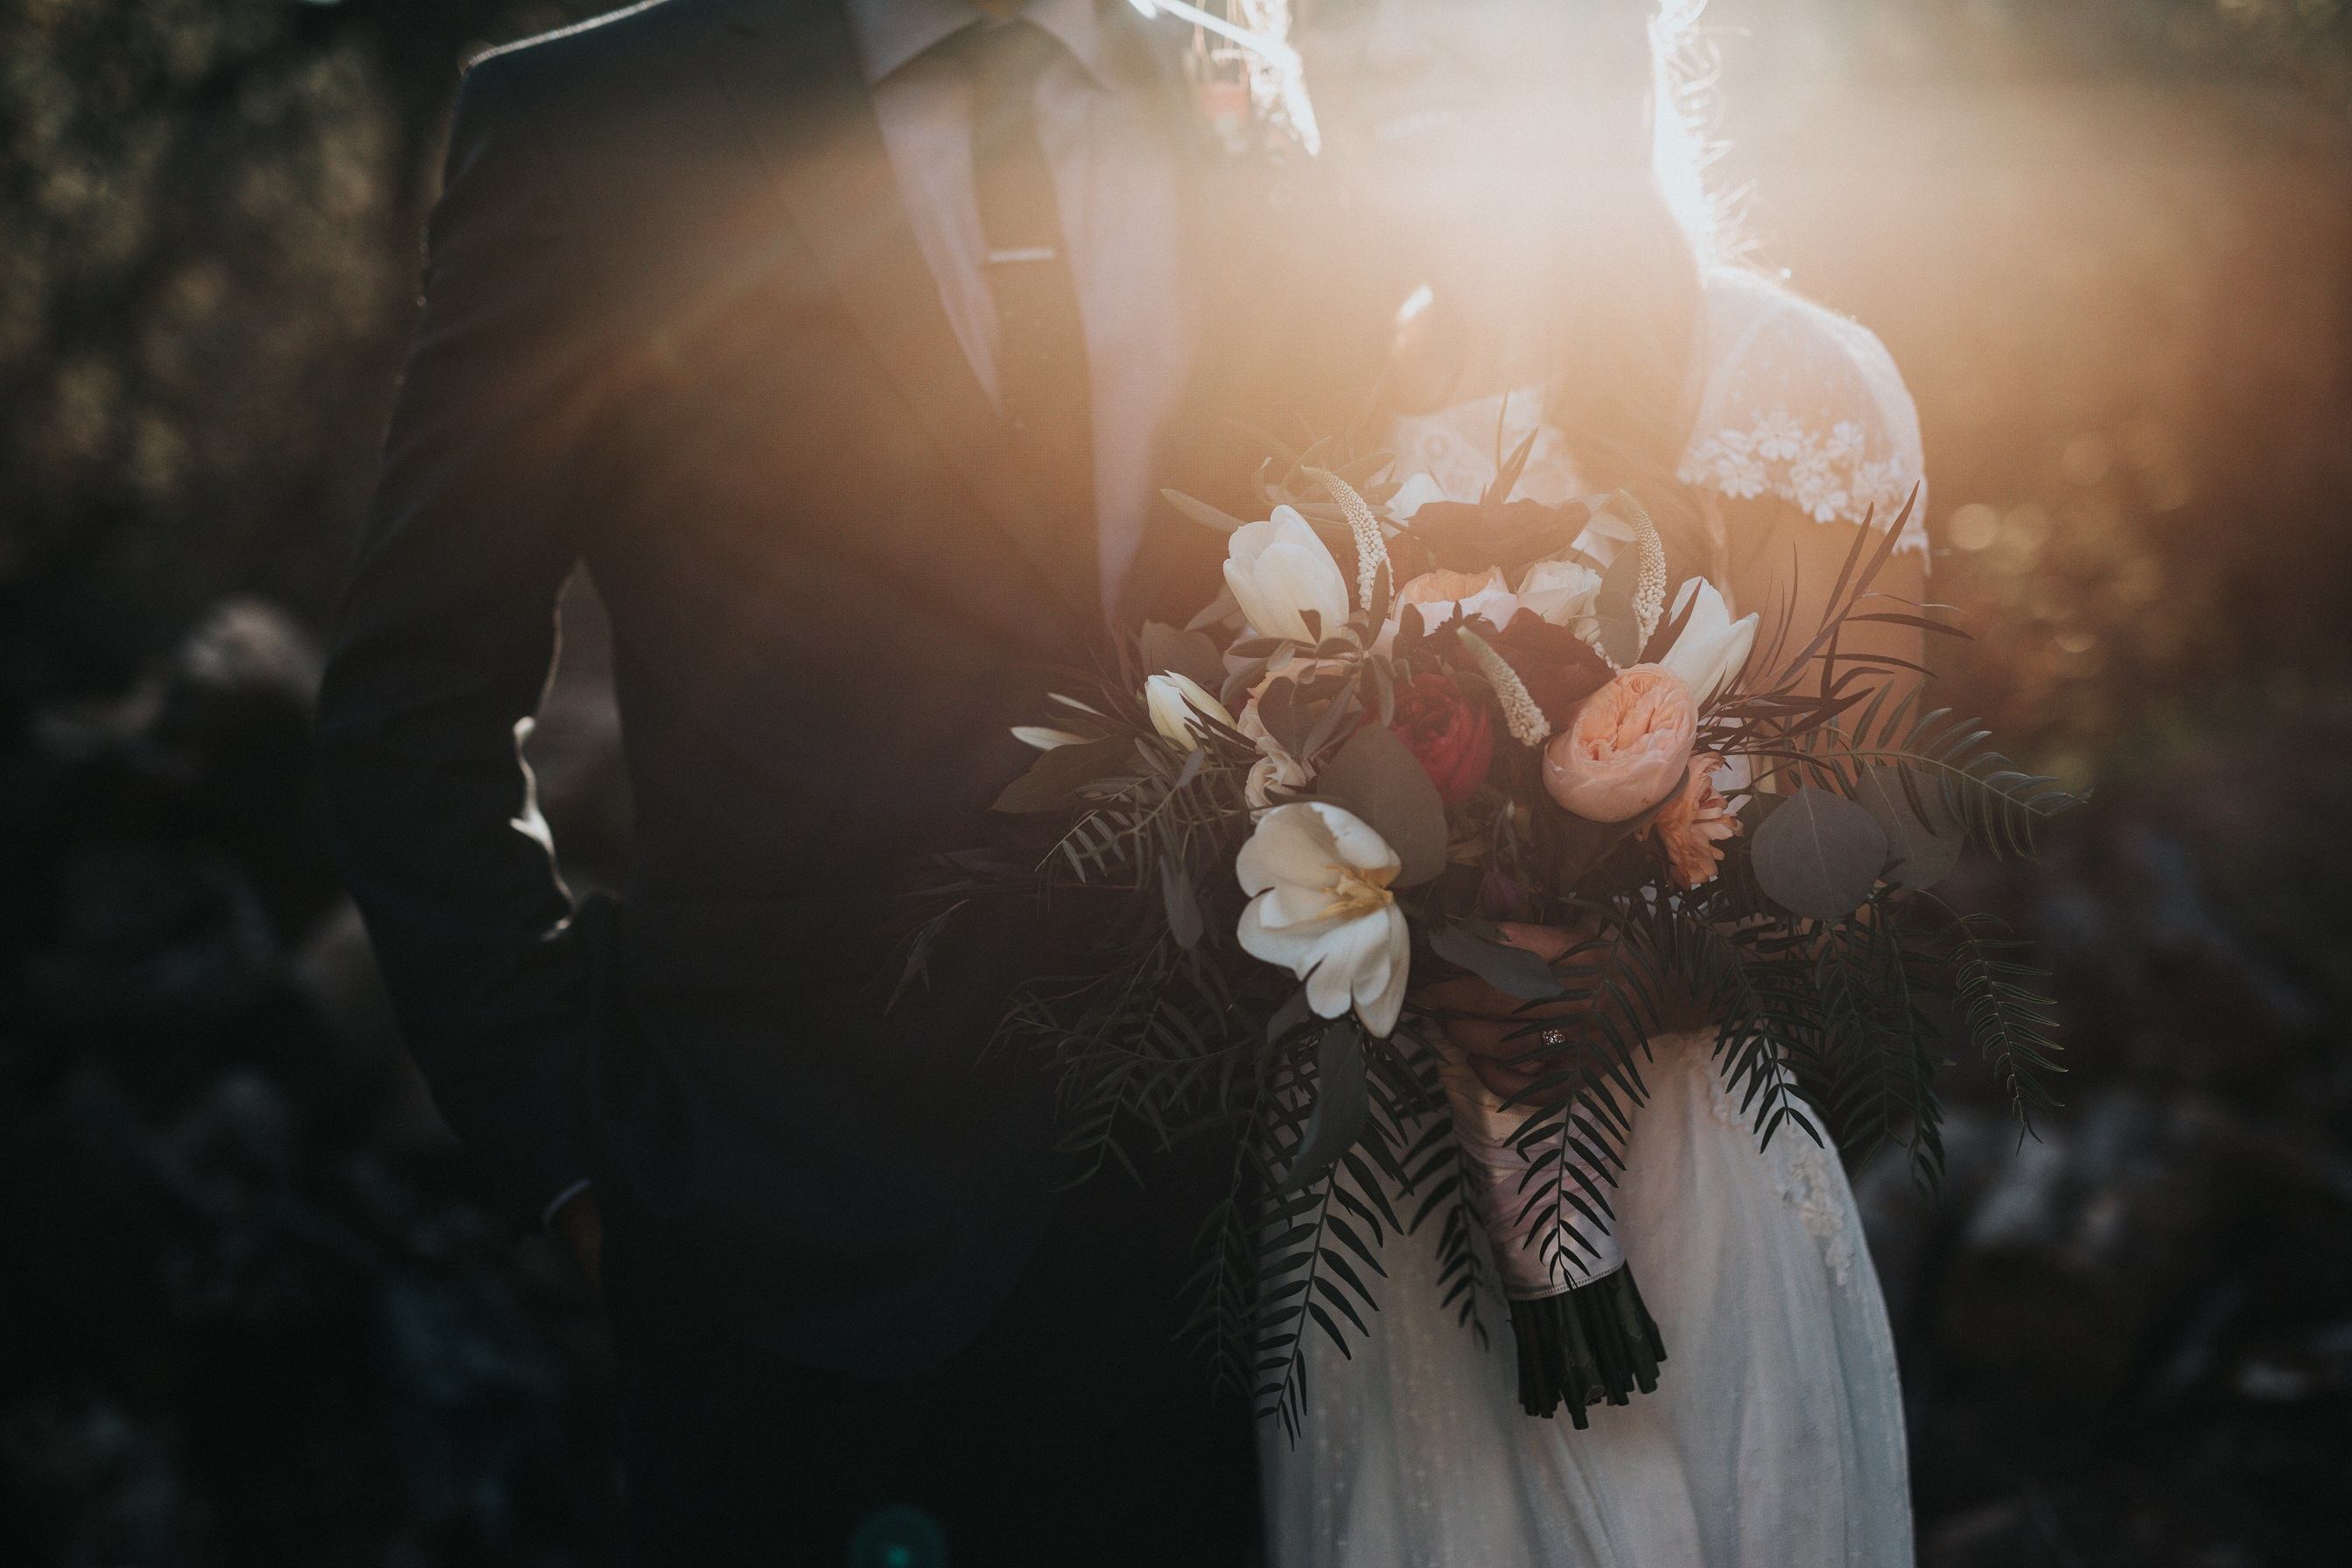 Slightly darkened image of a man in a tux and woman in a wedding dress holding a bouquet of flowers shot from the shoulders down.